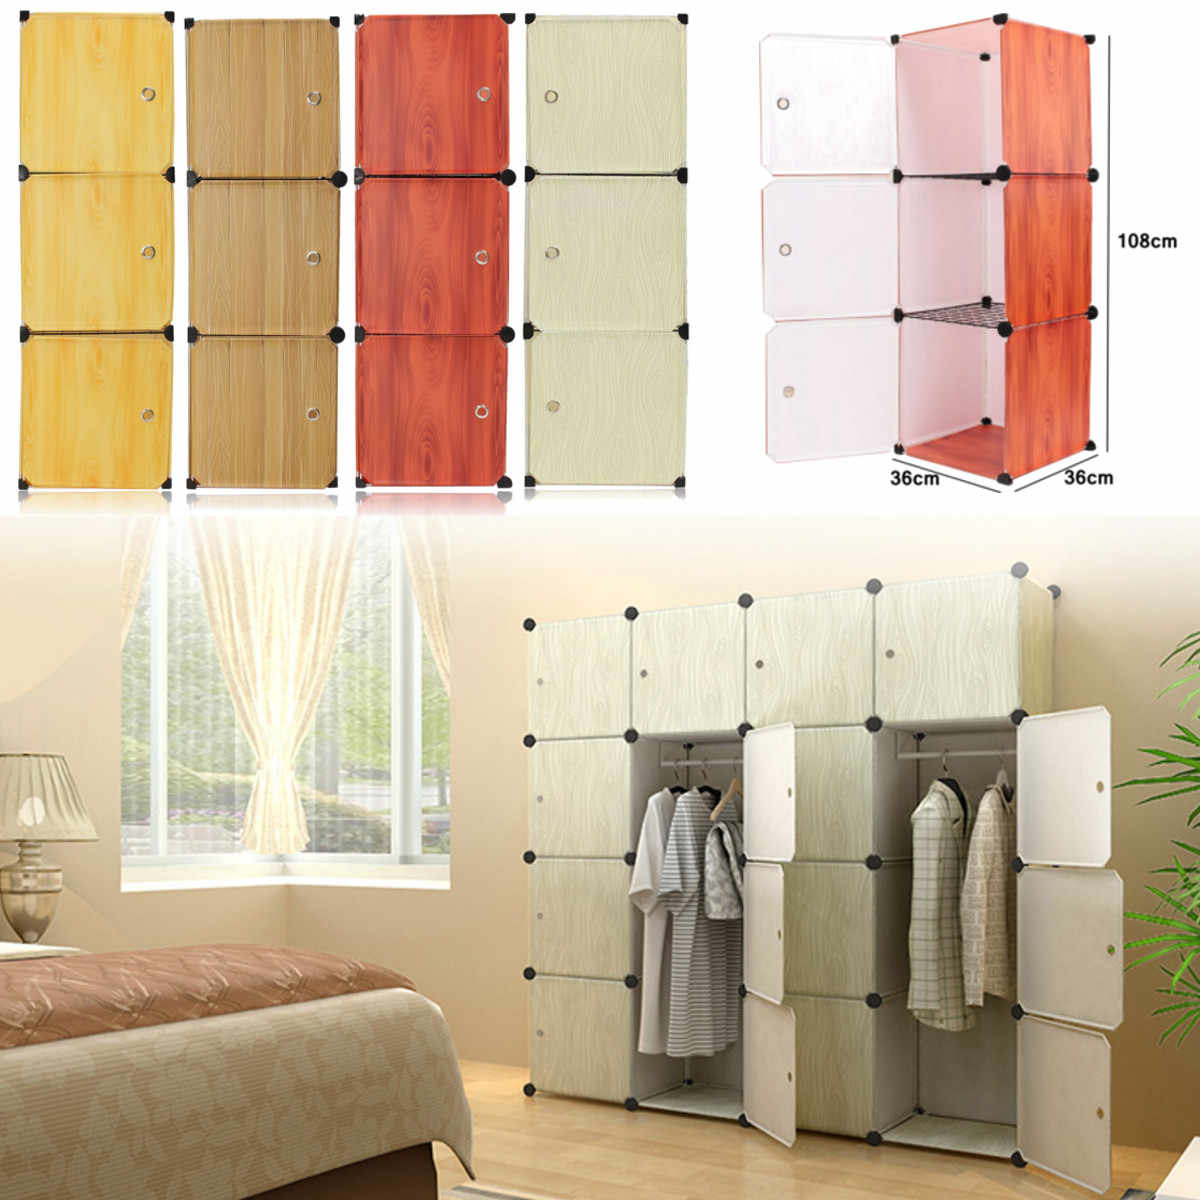 Detail Feedback Questions About 36x36x108cm Diy Resin Wood Grain Wardrobe Closet Cabinet Box Storage Organizer Four Colors Brown Yellow Red White On